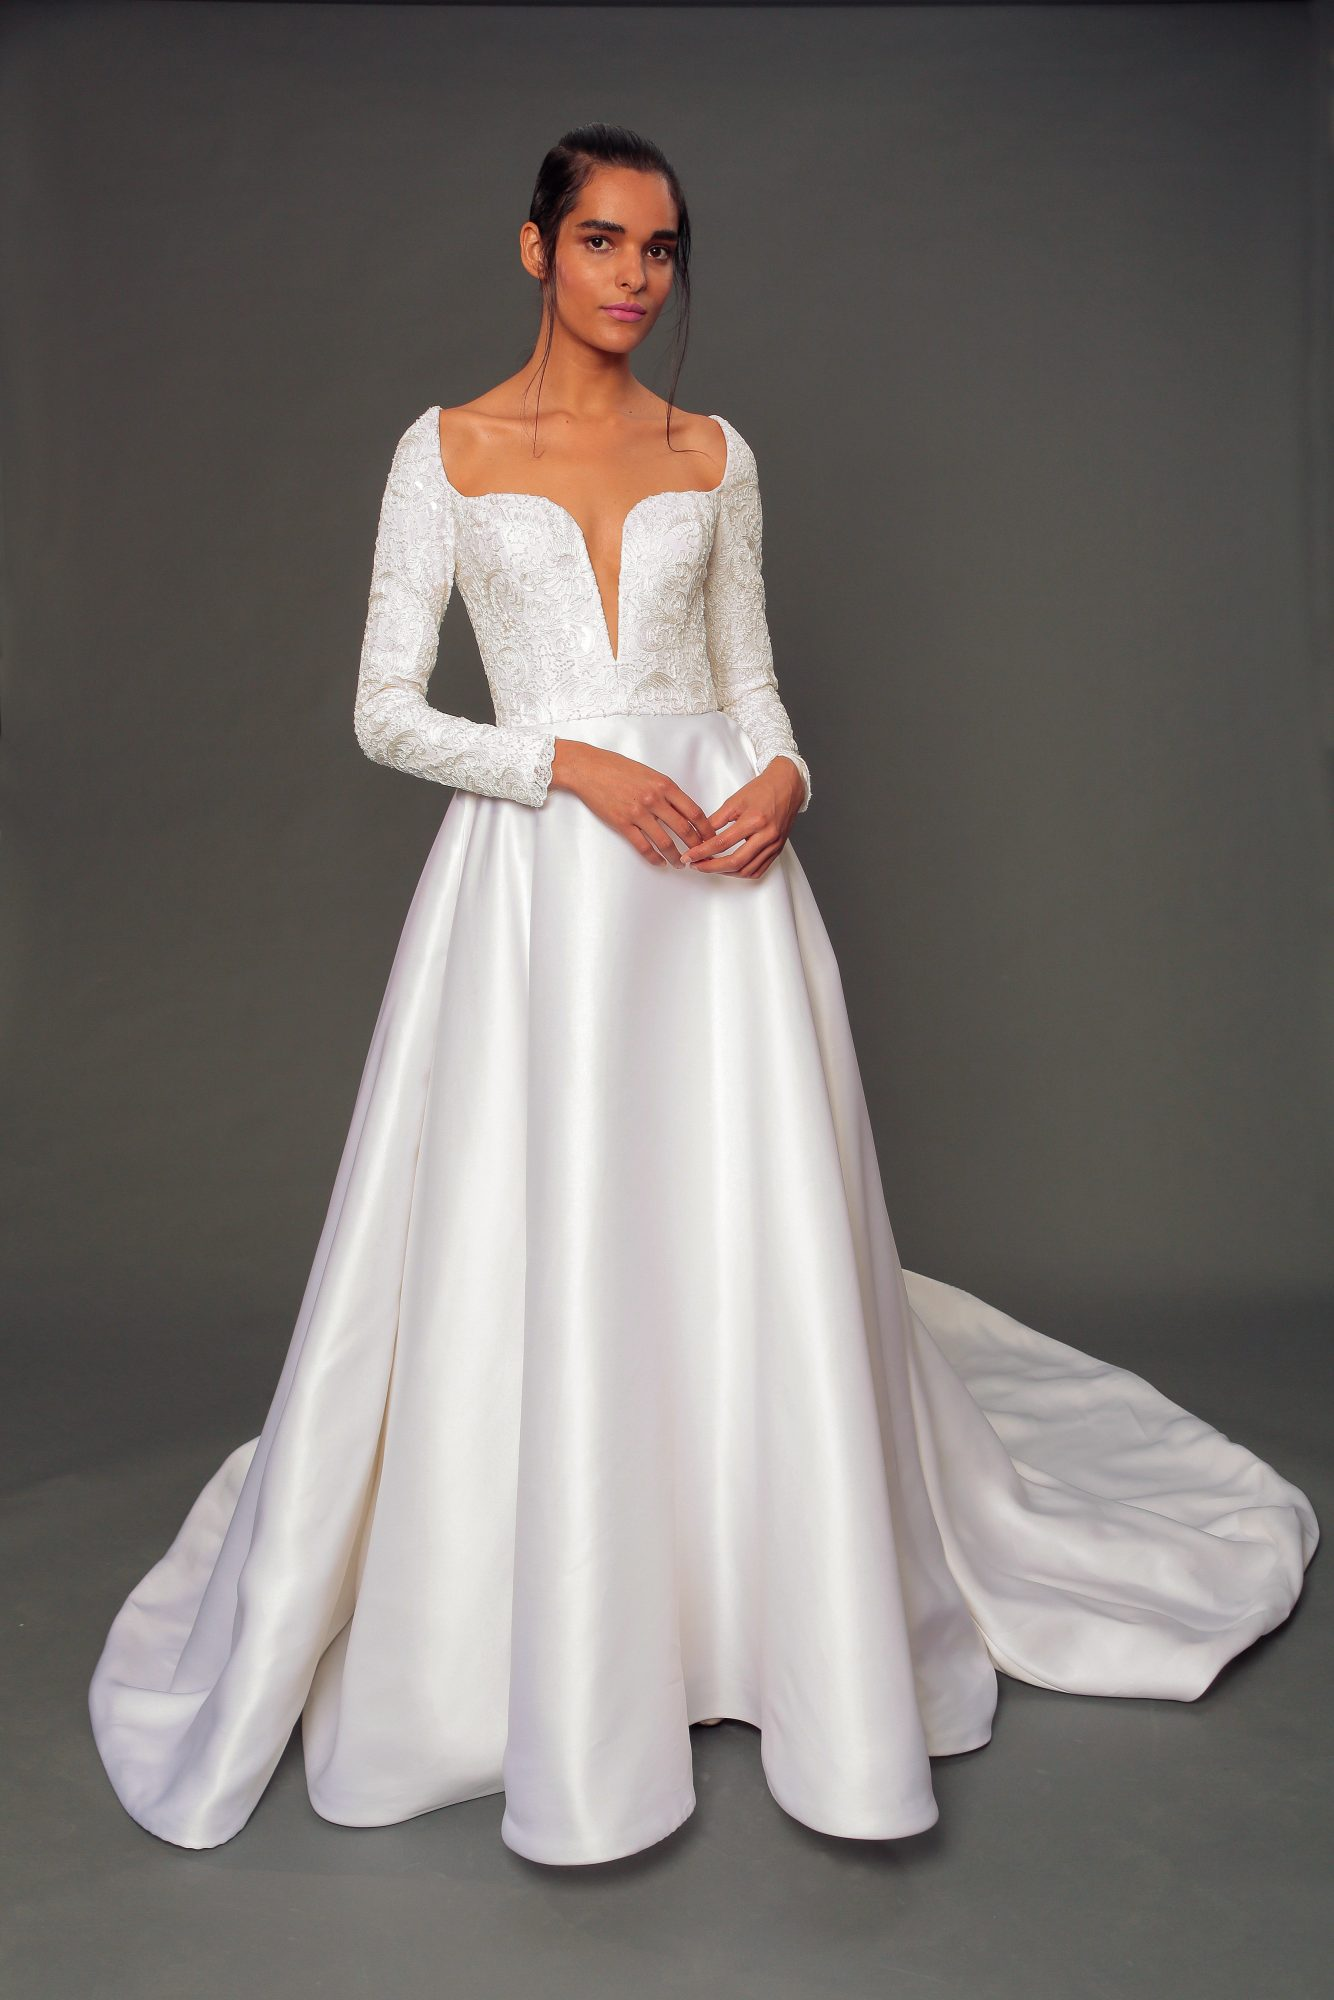 isabelle armstrong fall 2019 long sleeve a-line wedding dress